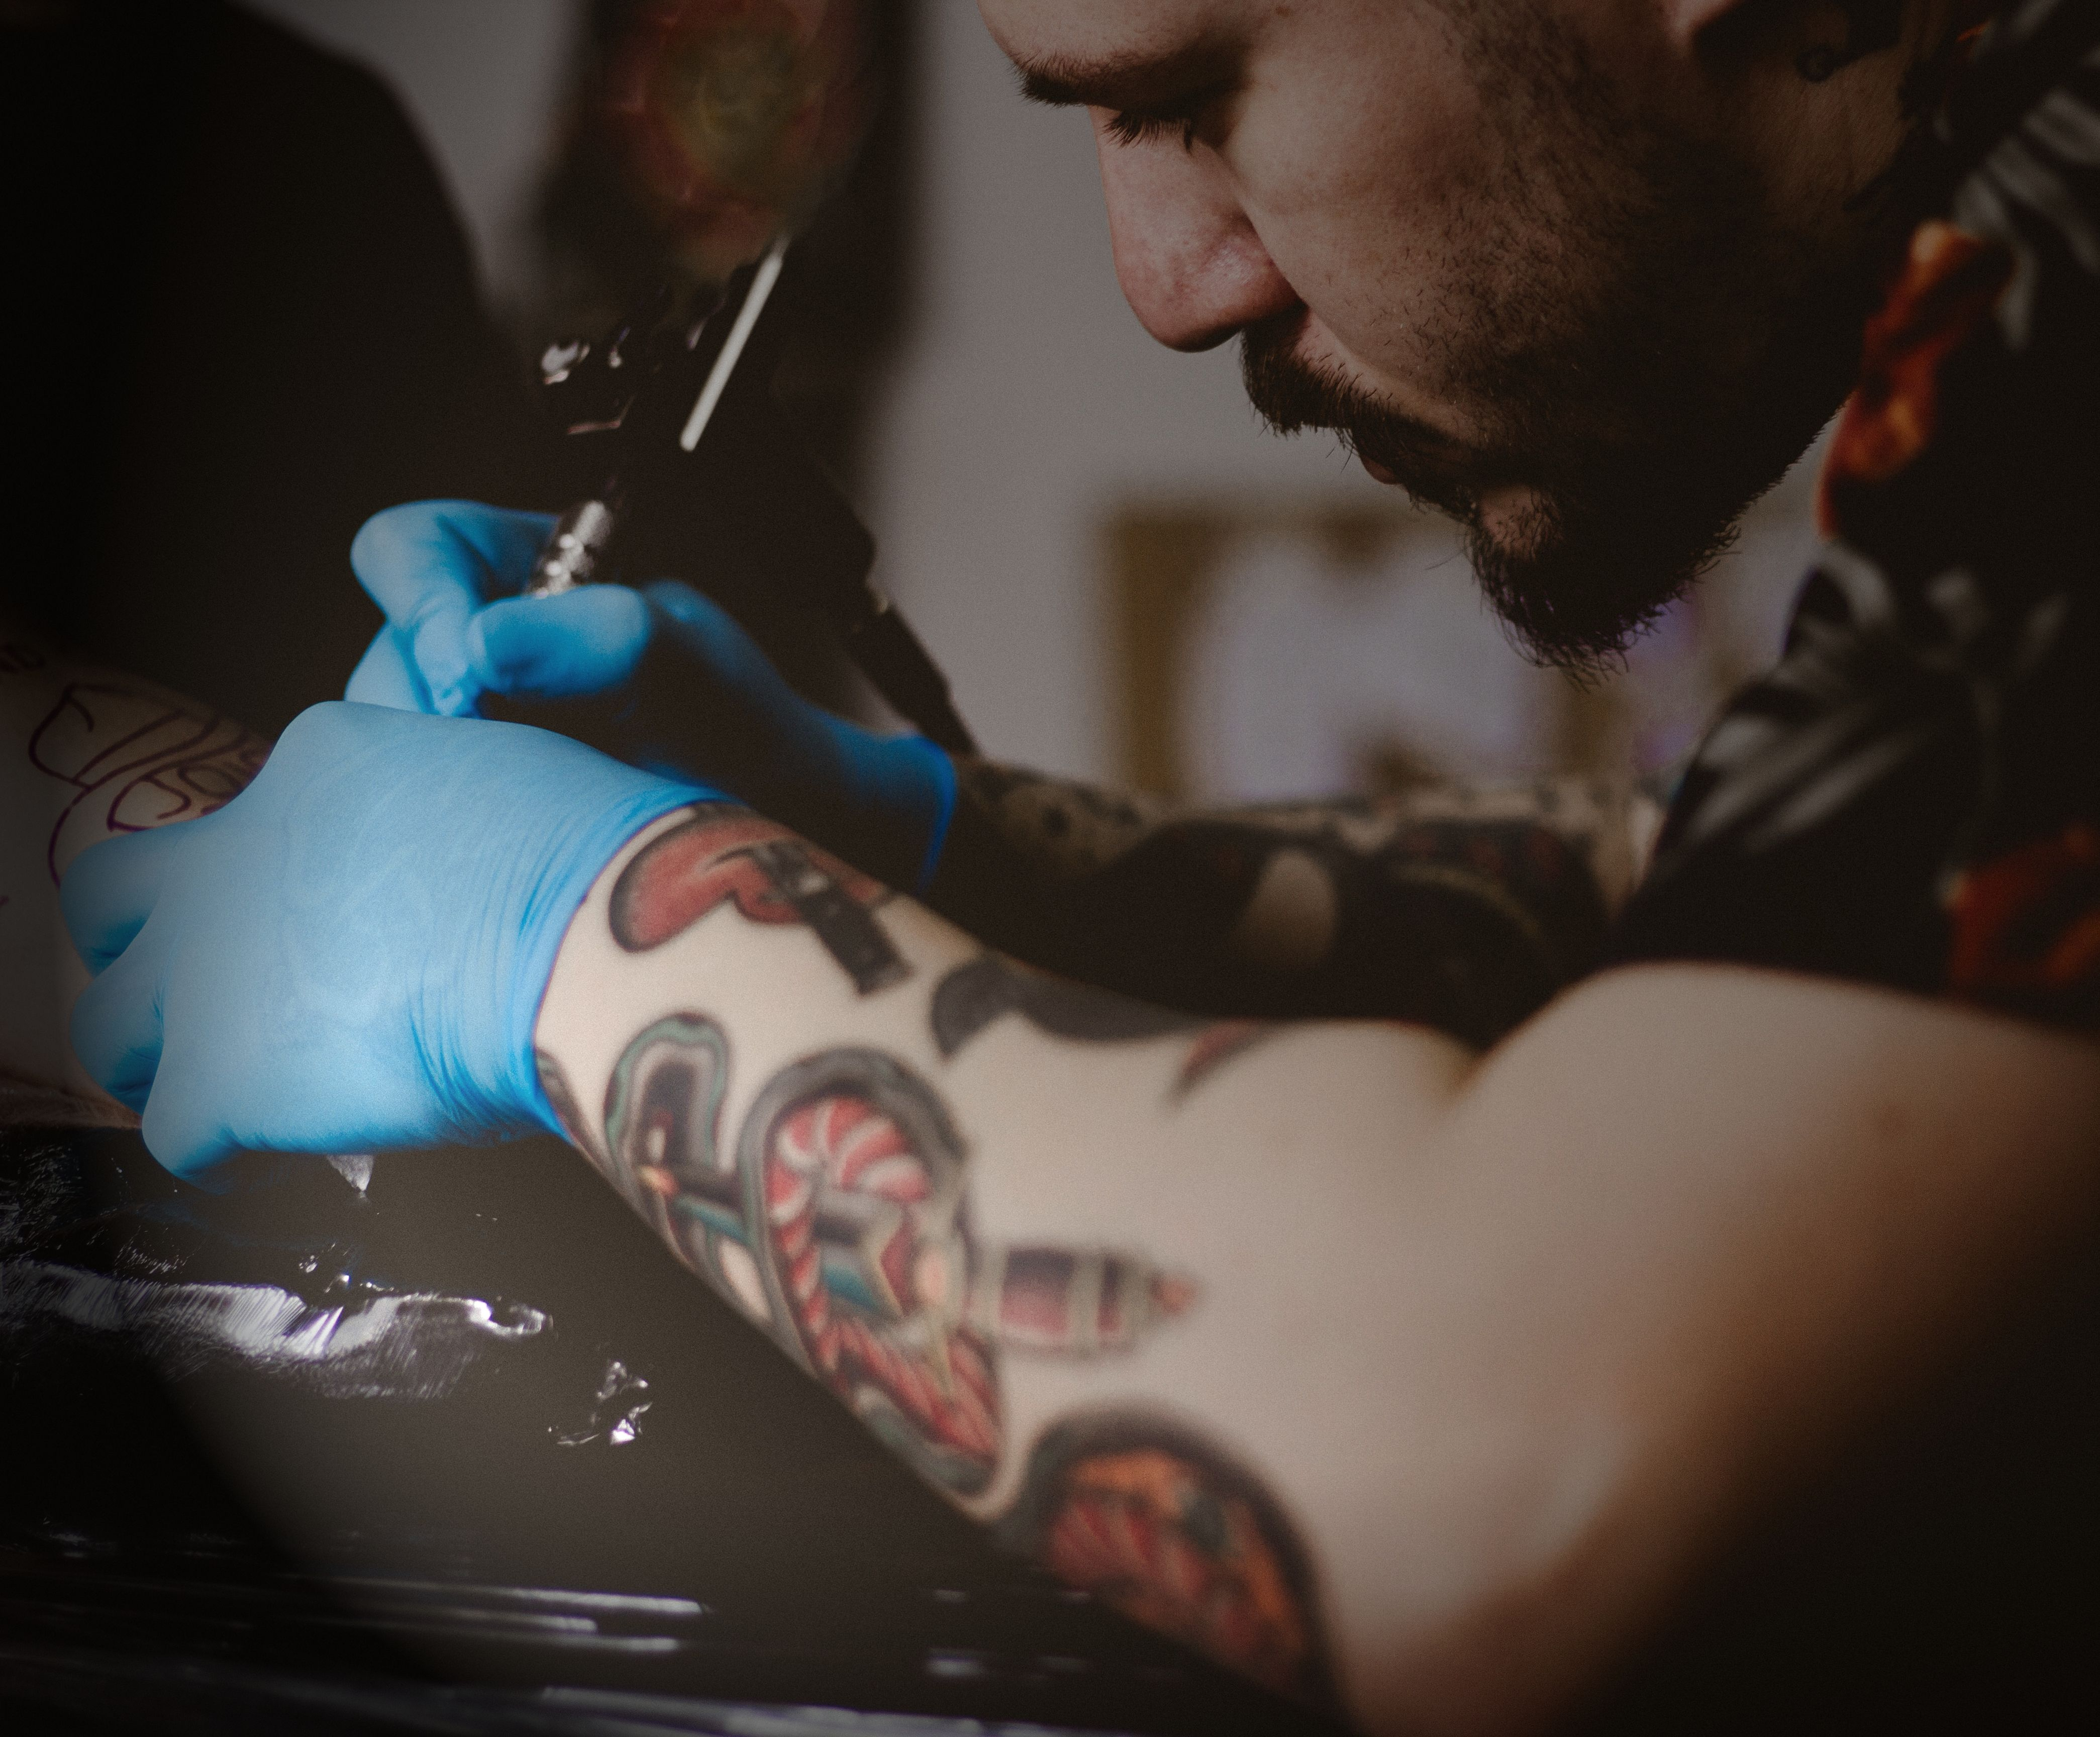 Cool tattoo designs for your hand beards and tattoos go hand in hand we love them and are massive